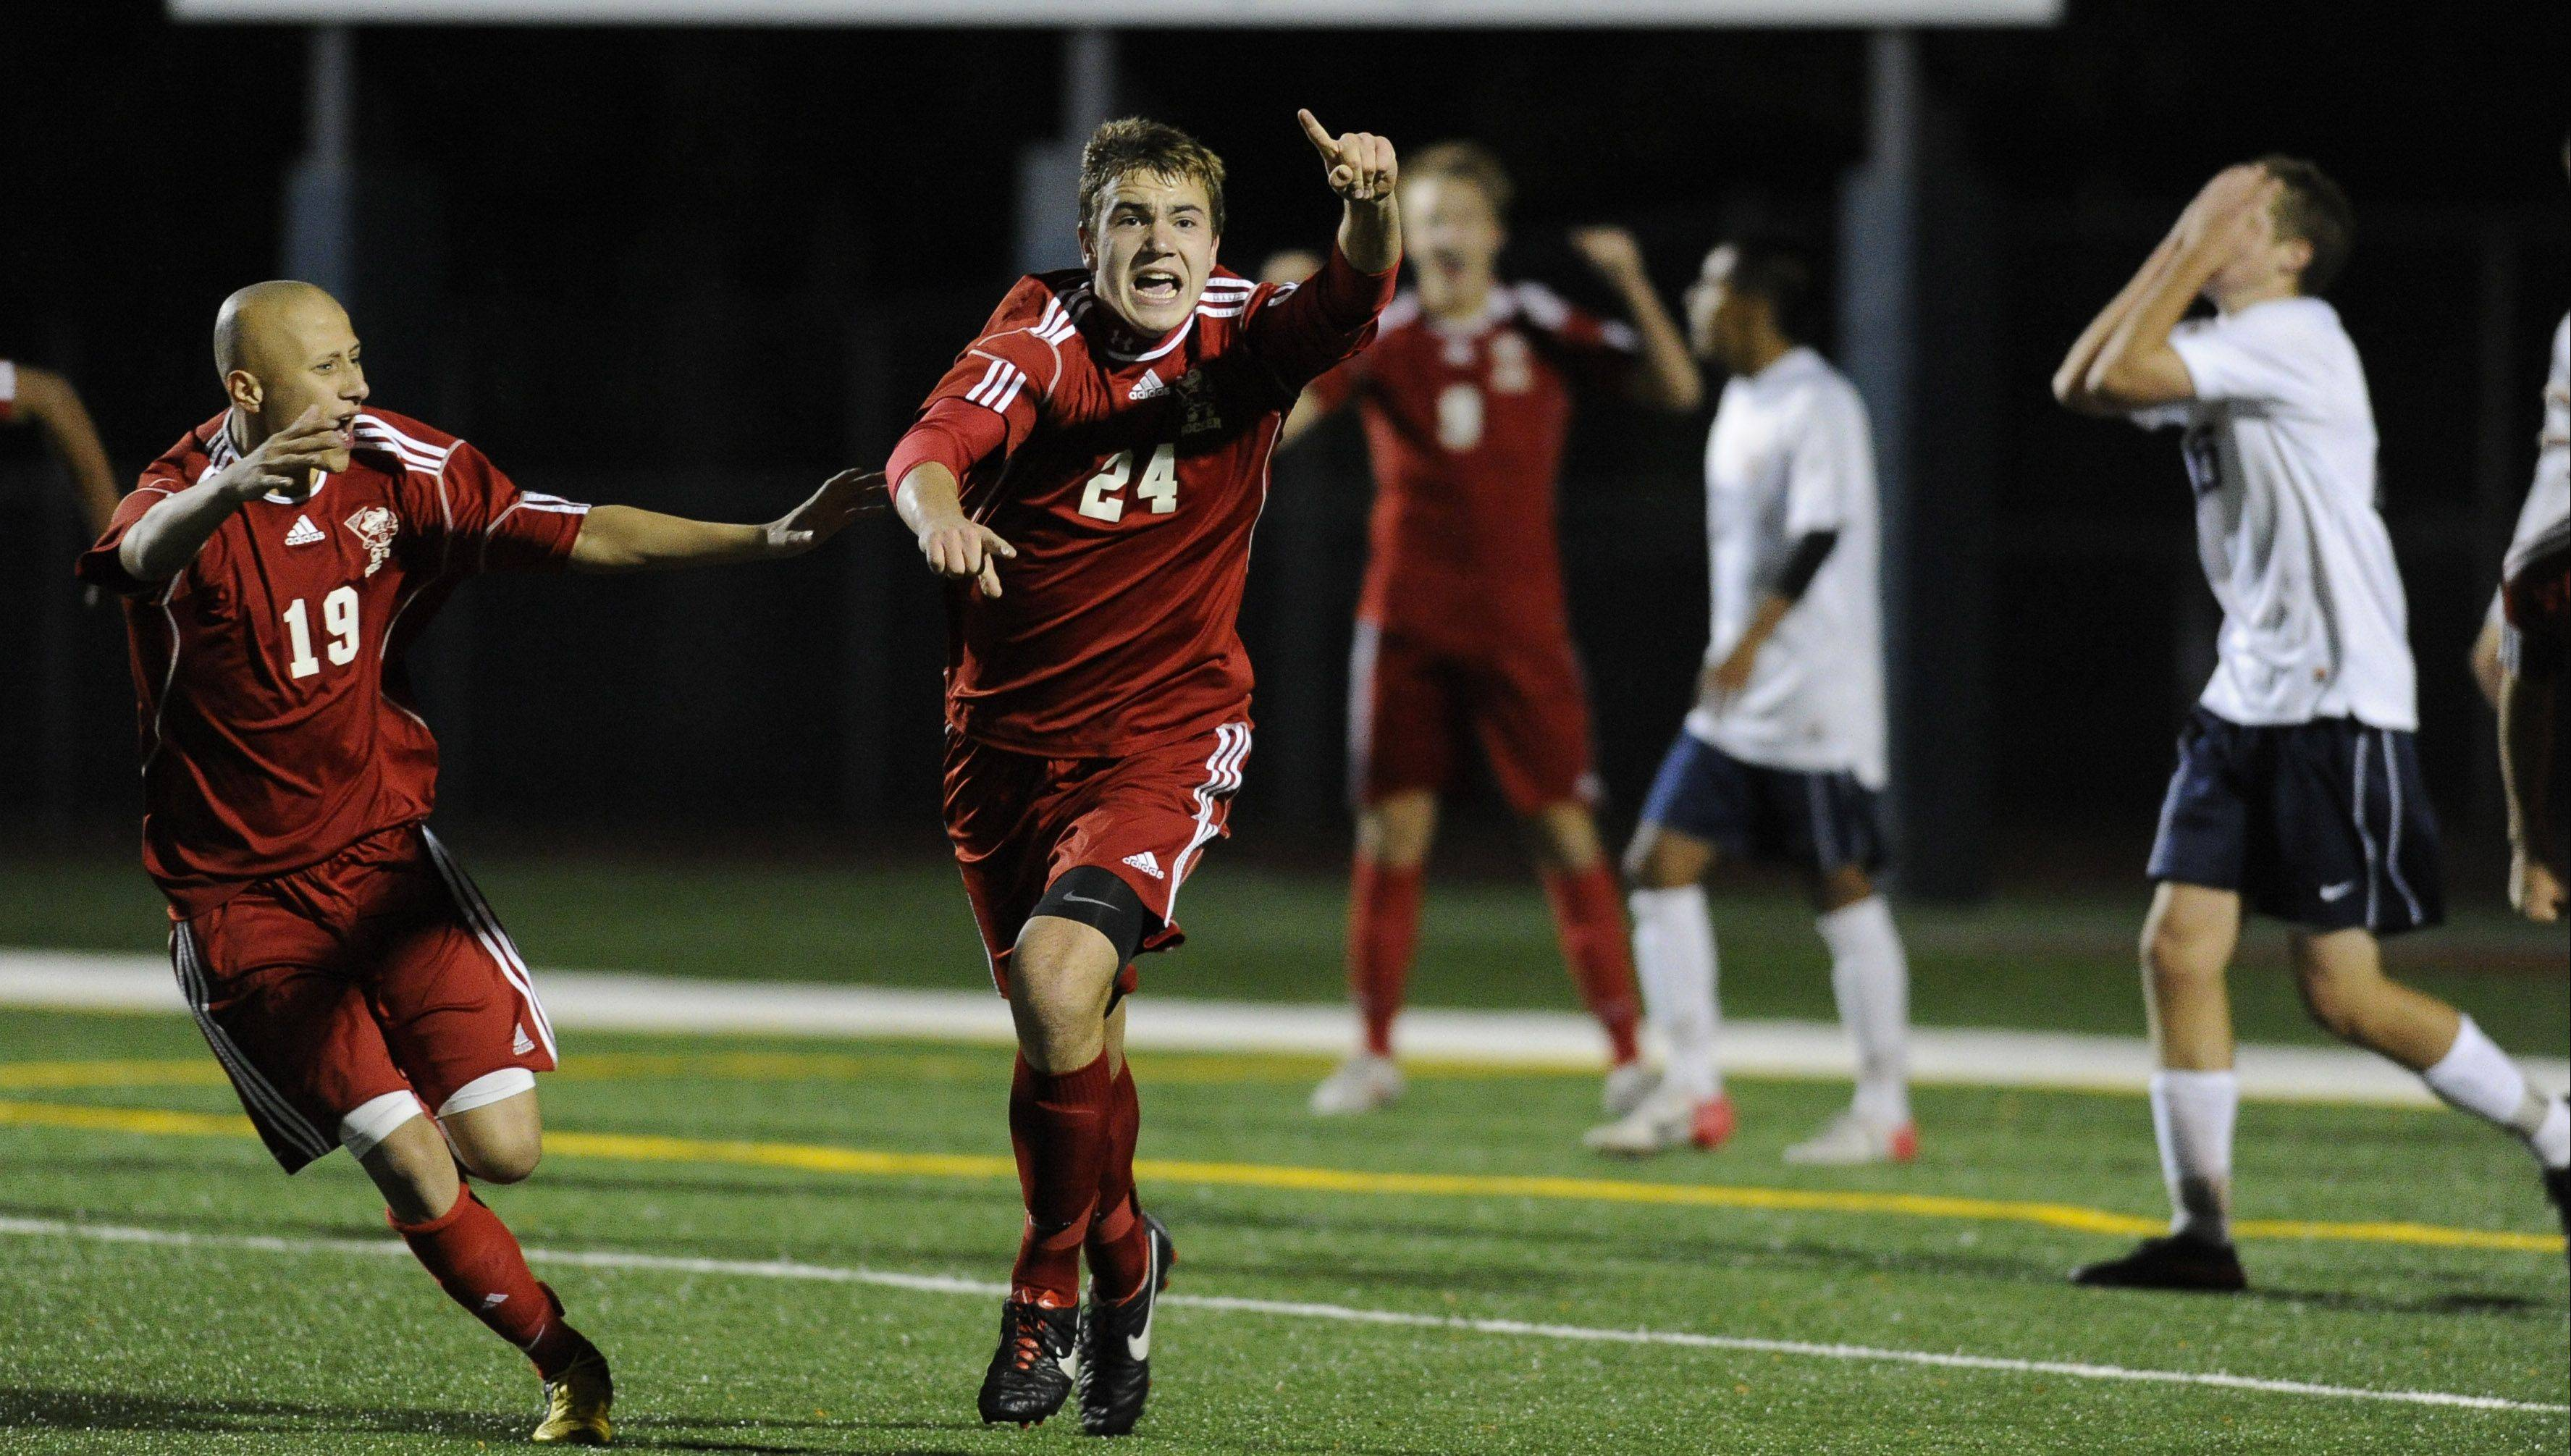 Palatine's Jeremy Velinski and his teammates erupt in excitement after evening up the score last in the second period in the Mid-Suburban League championship game at Buffalo Grove High School on Thursday. The Pirates later claimed victory in penalty kicks.